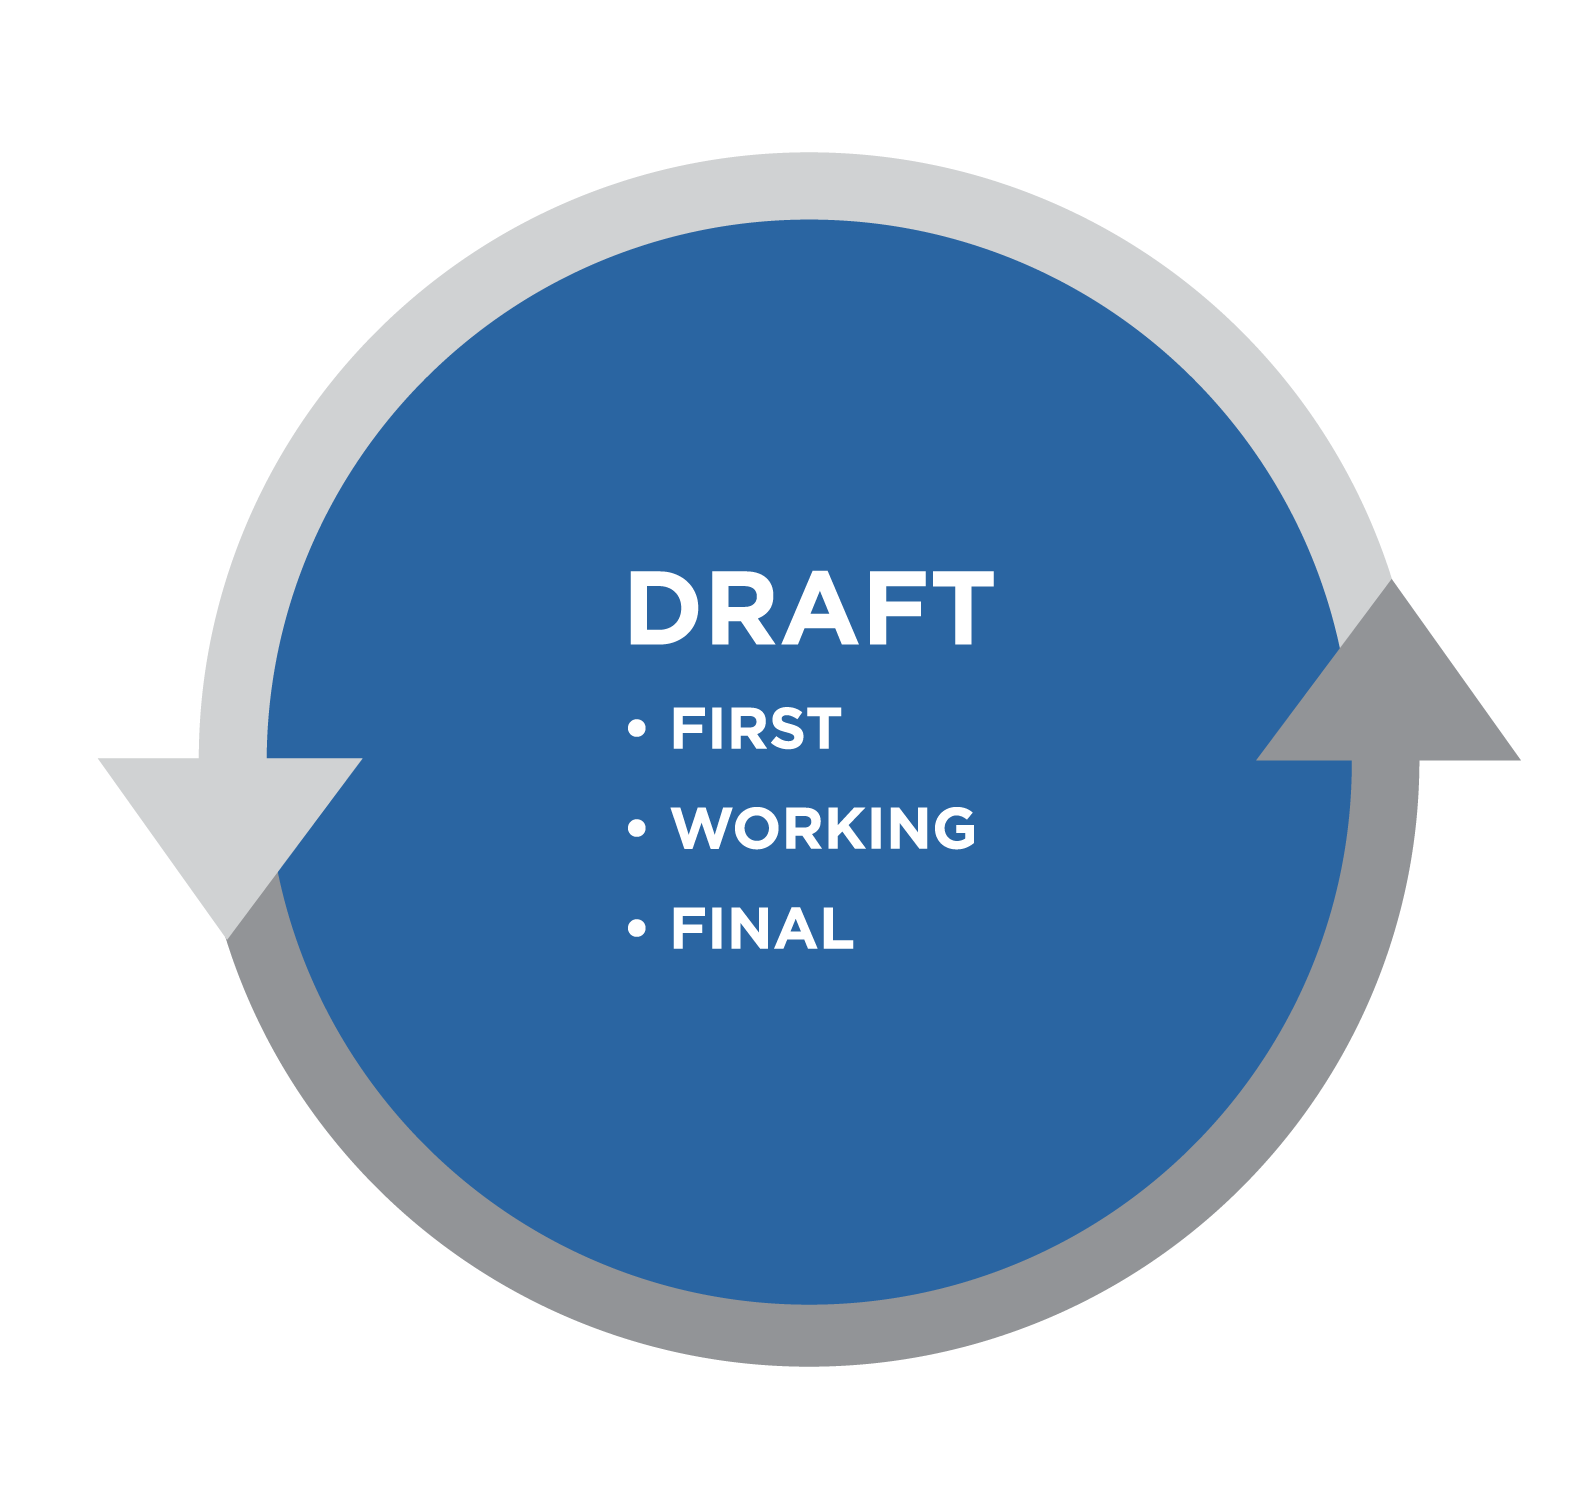 Graphic titled Draft. Bullet list: first, working, final. All is in a blue circle bordered by gray arrows.